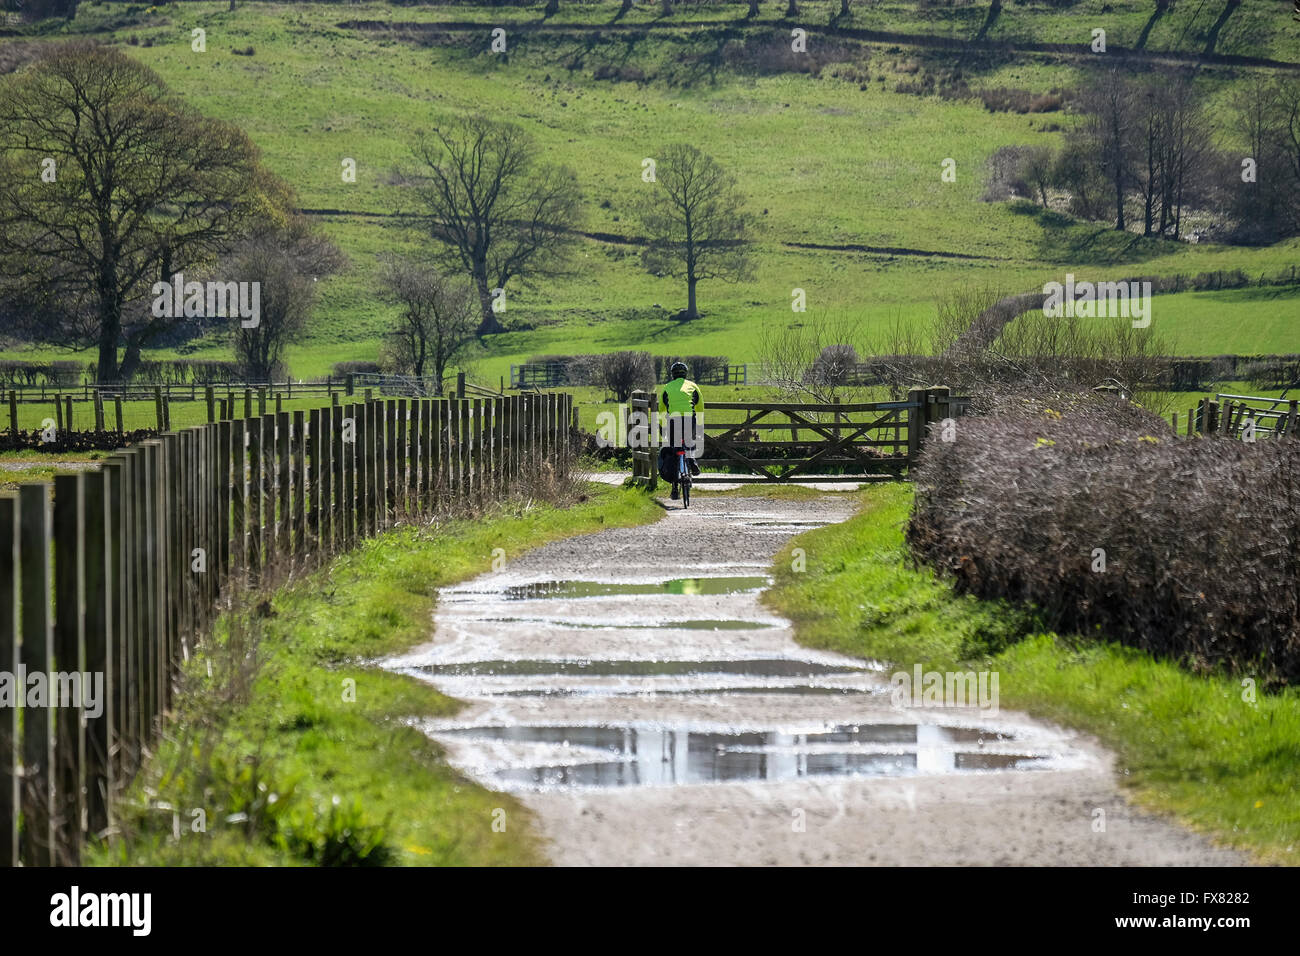 Cyclist on a wet path with puddles in the countryside - Stock Image